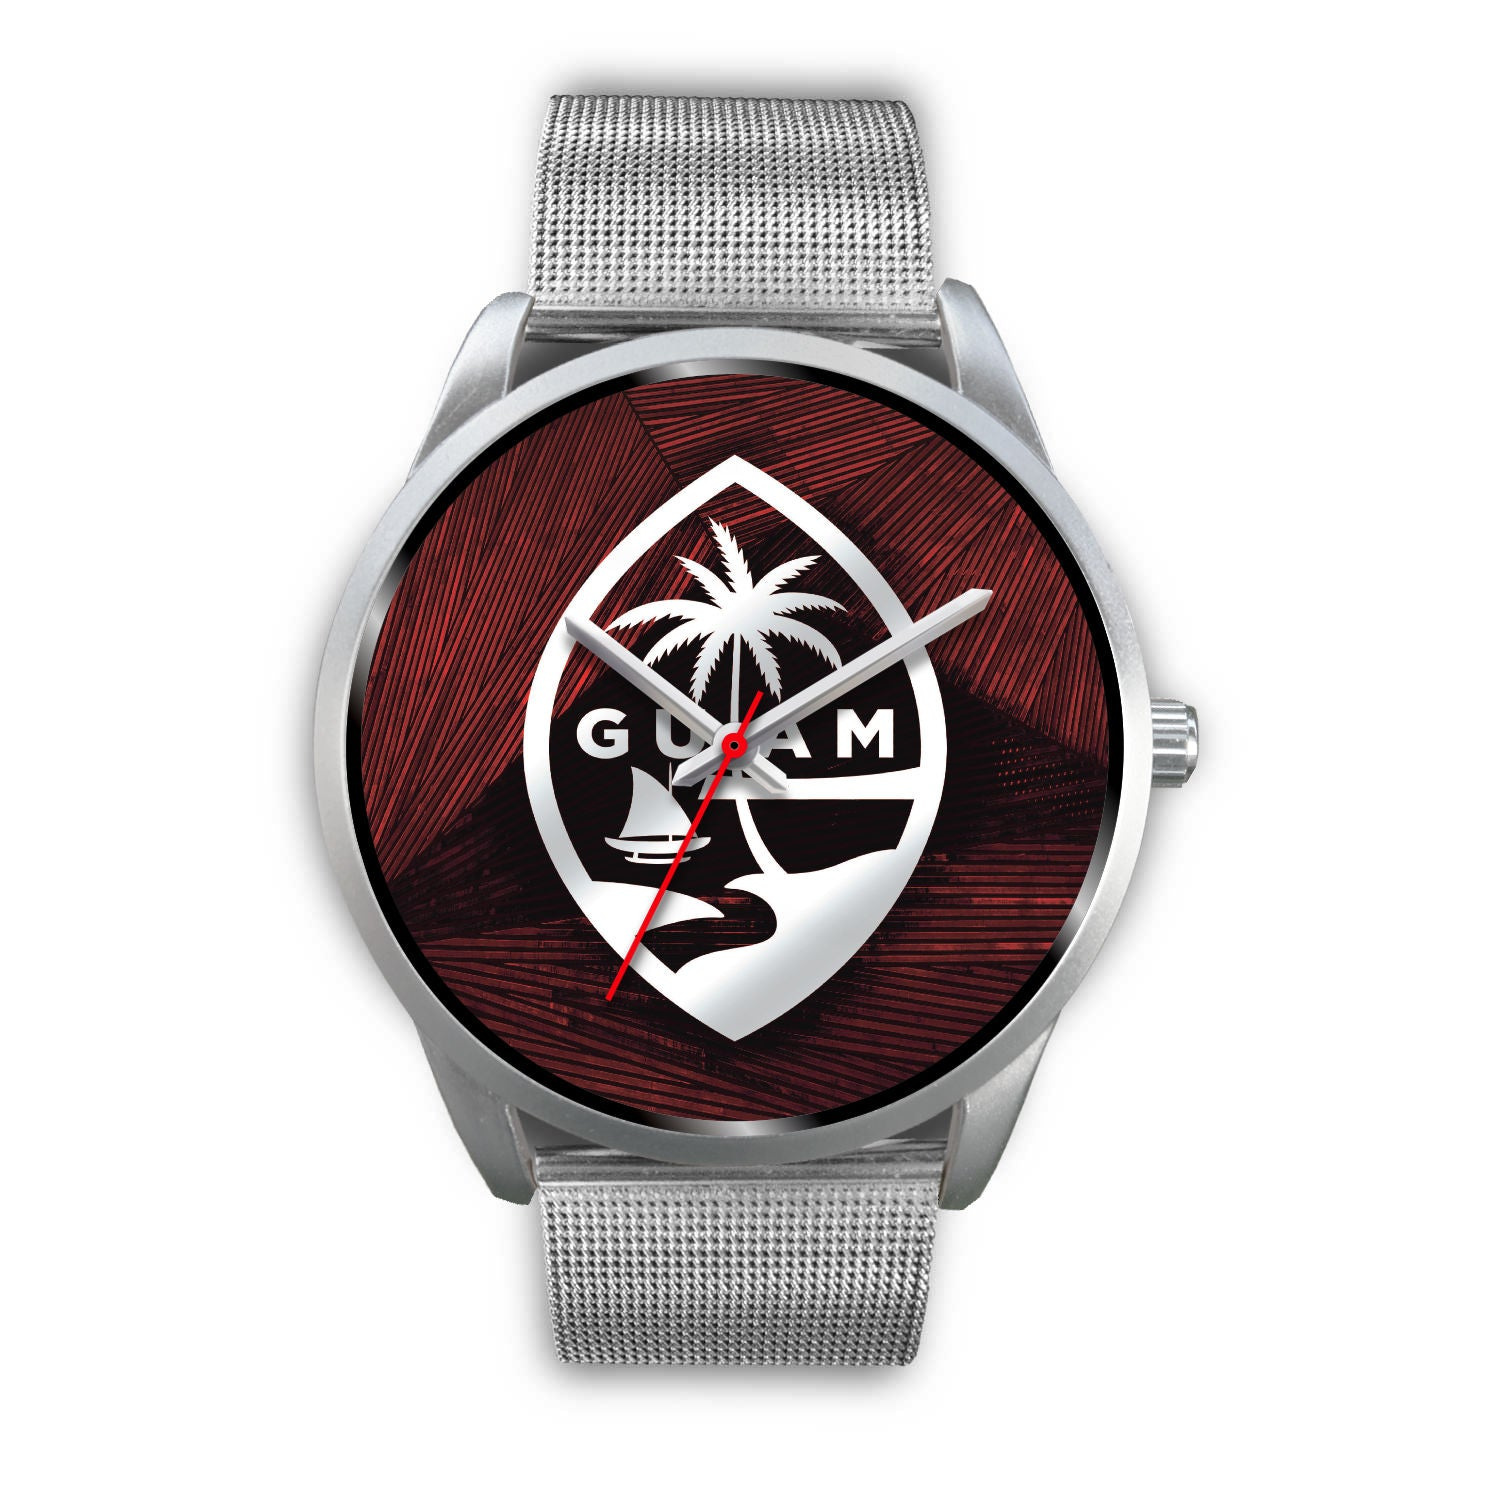 Guam Seal Chamorro Islander Red and Silver Watch